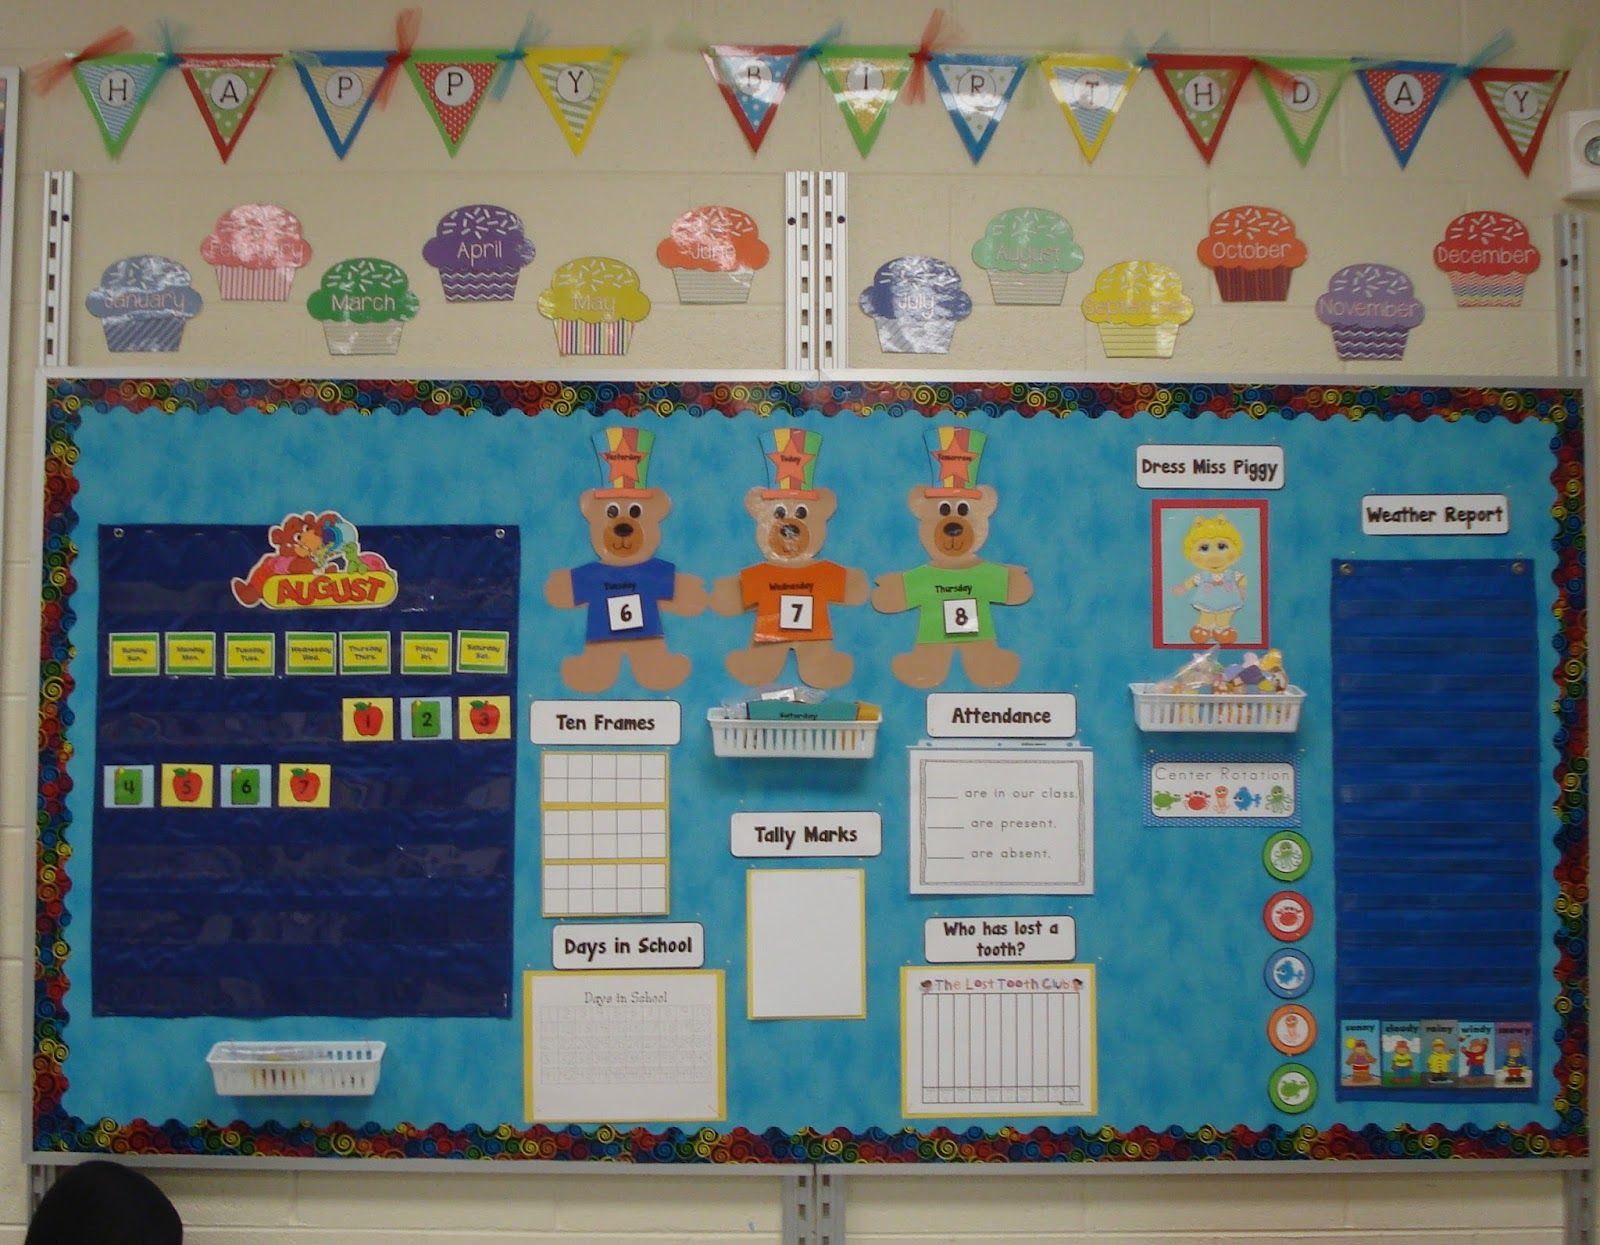 Calendar Ideas For Nursery : Reflective calendar in the preschool room classroom